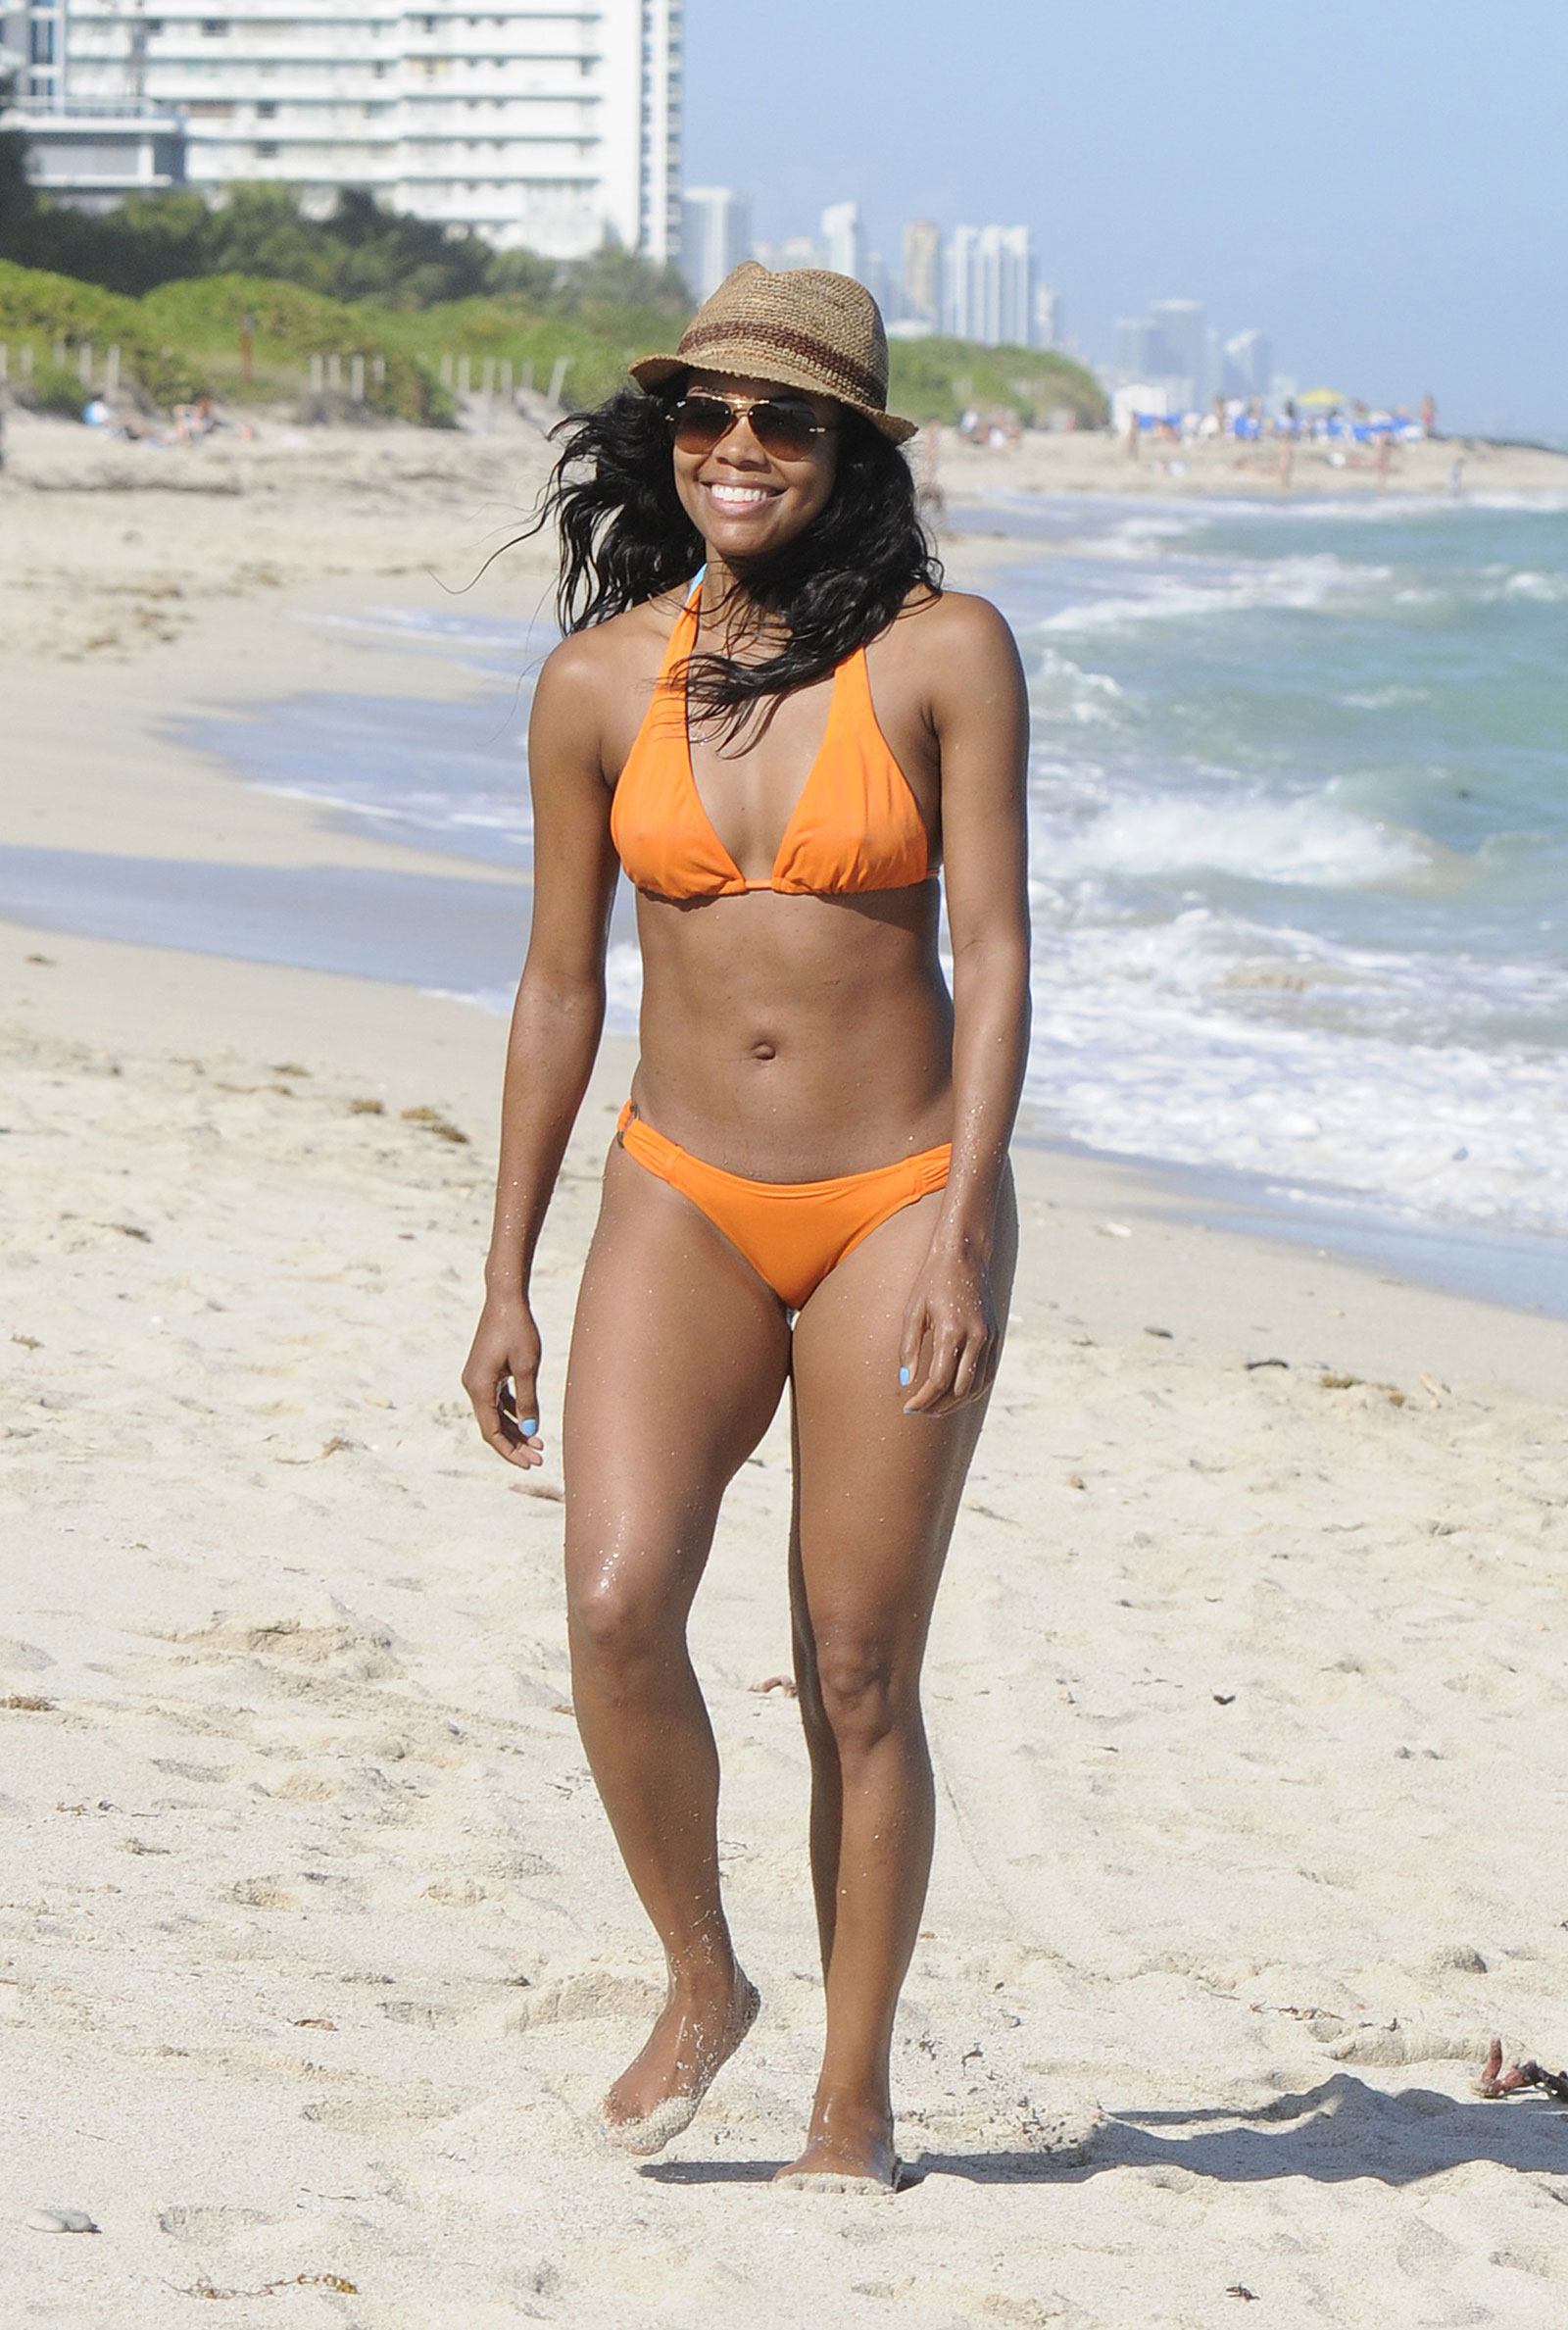 With her slim body and Black hairtype without bra (cup size 32B) on the beach in bikini